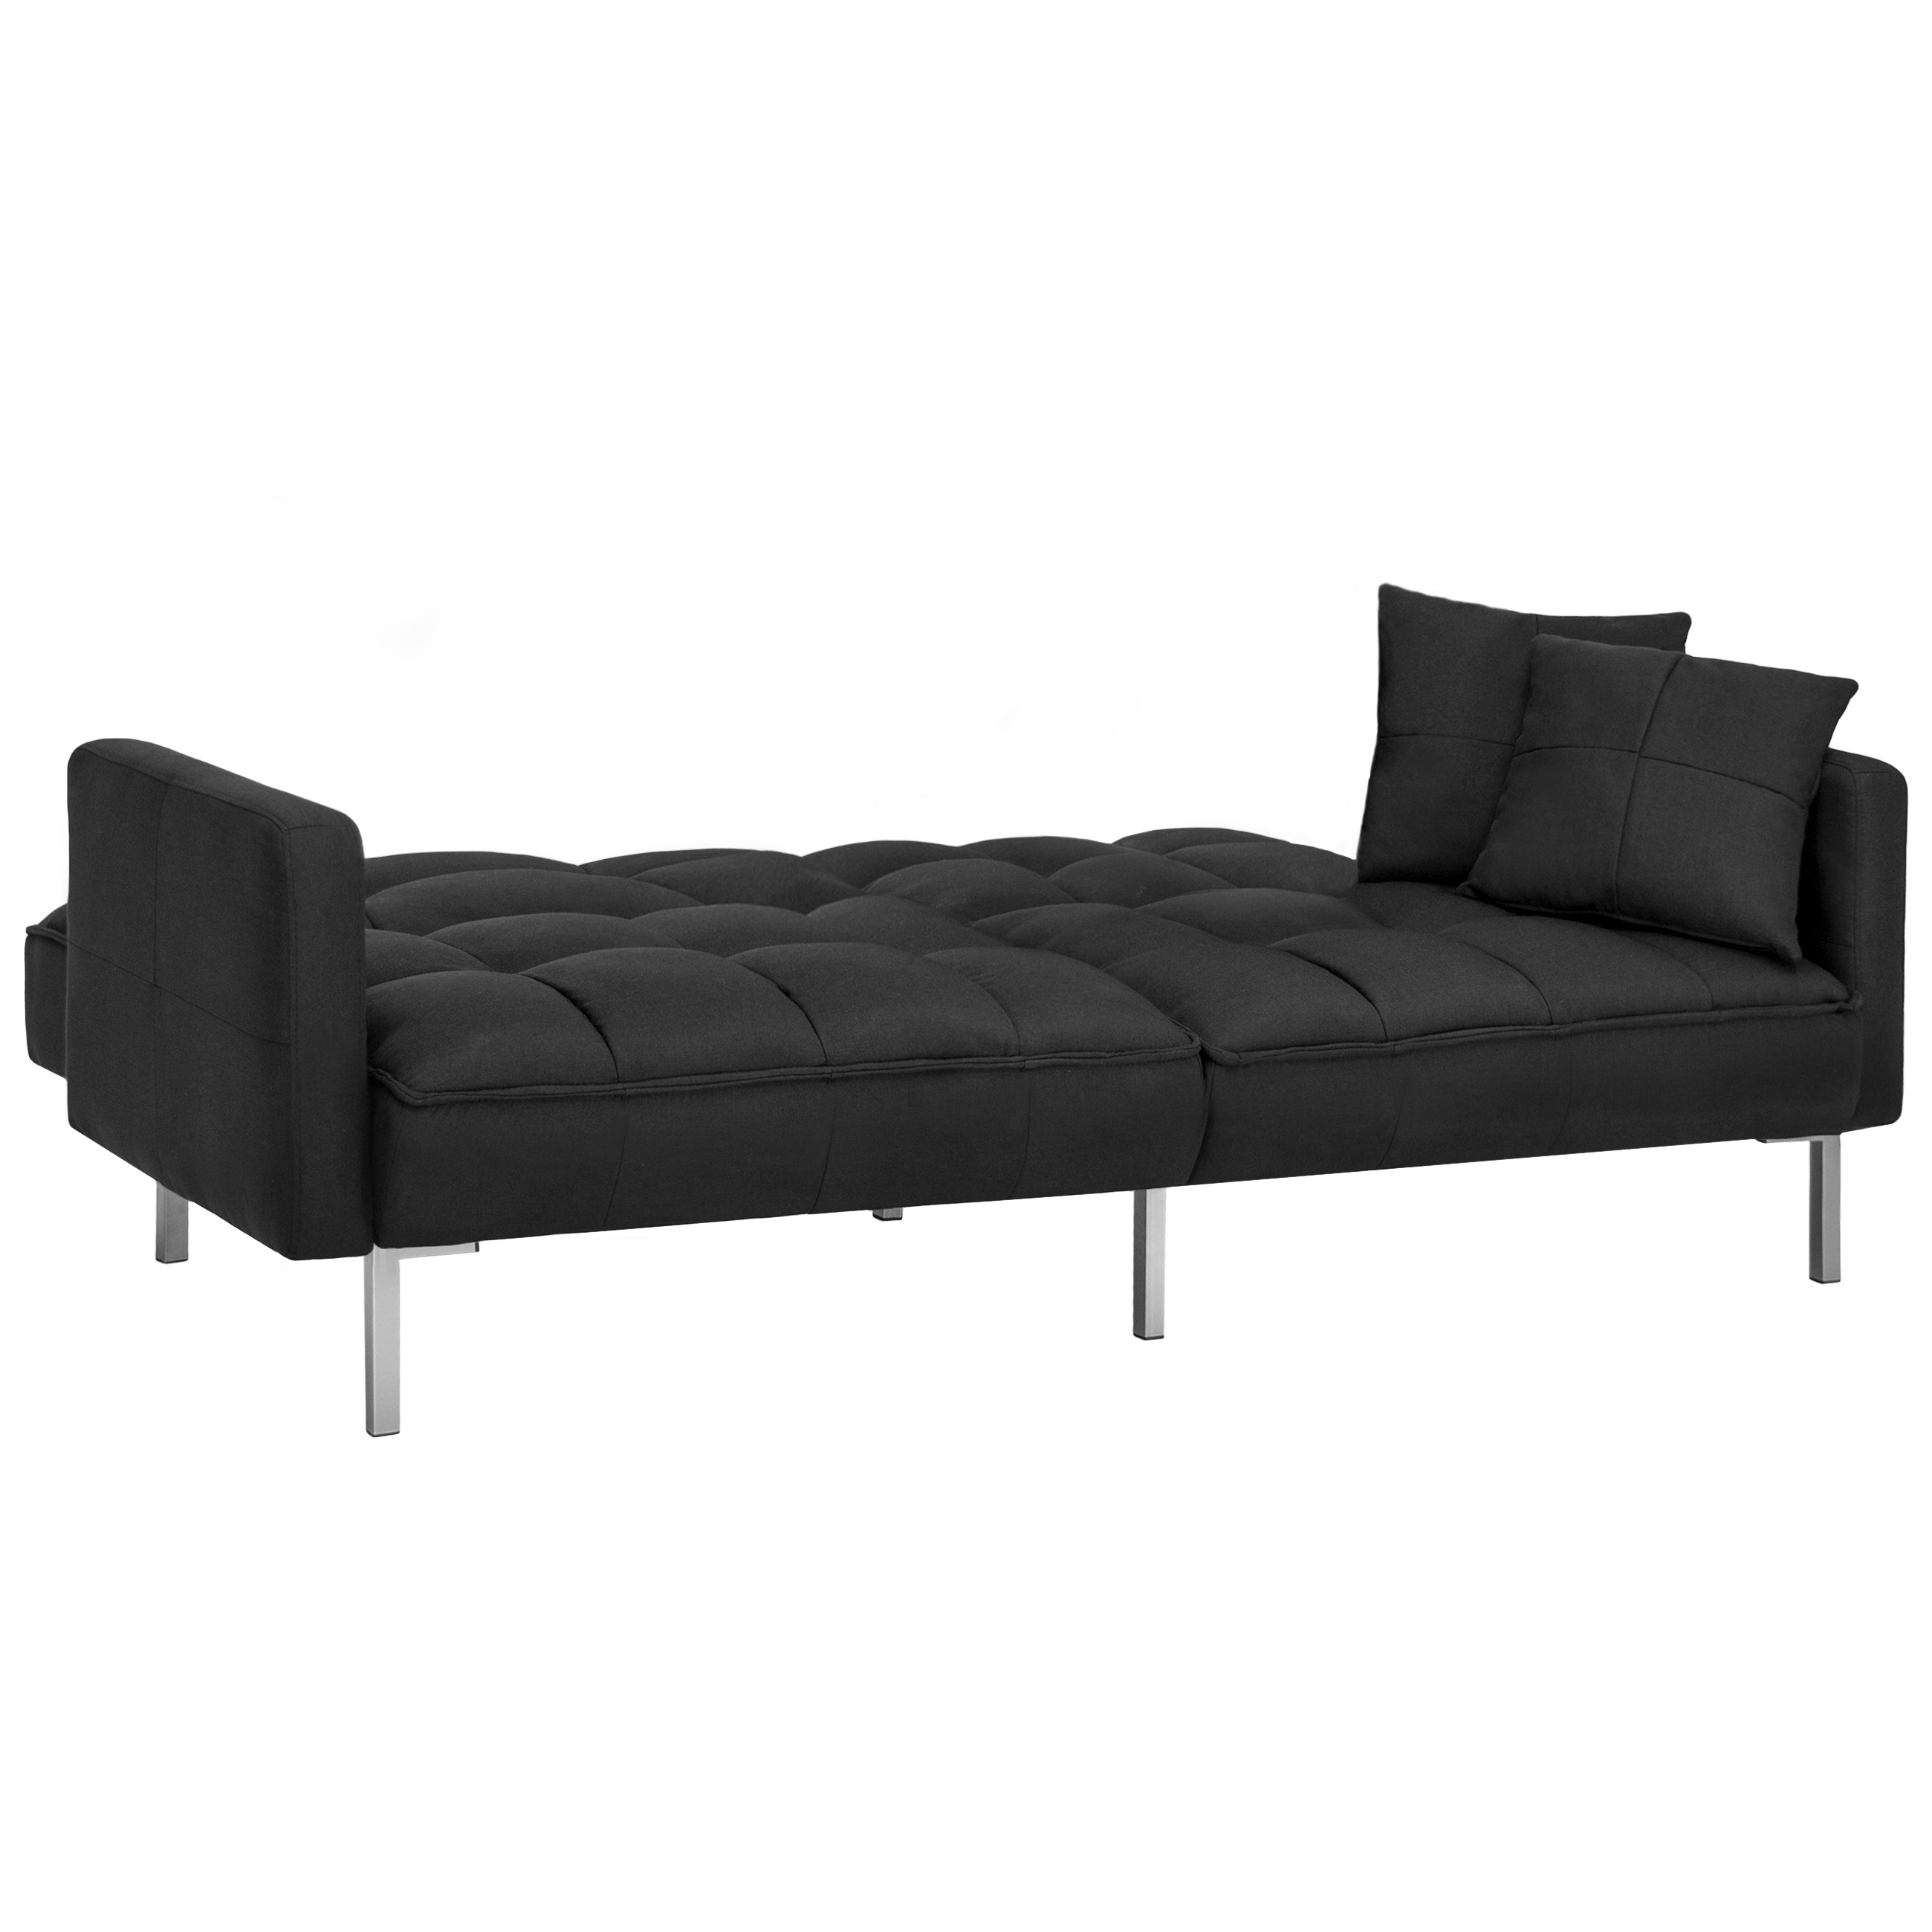 Best Choice Products Convertible Futon Linen Tufted Split Back Couch W Pillows Black Com